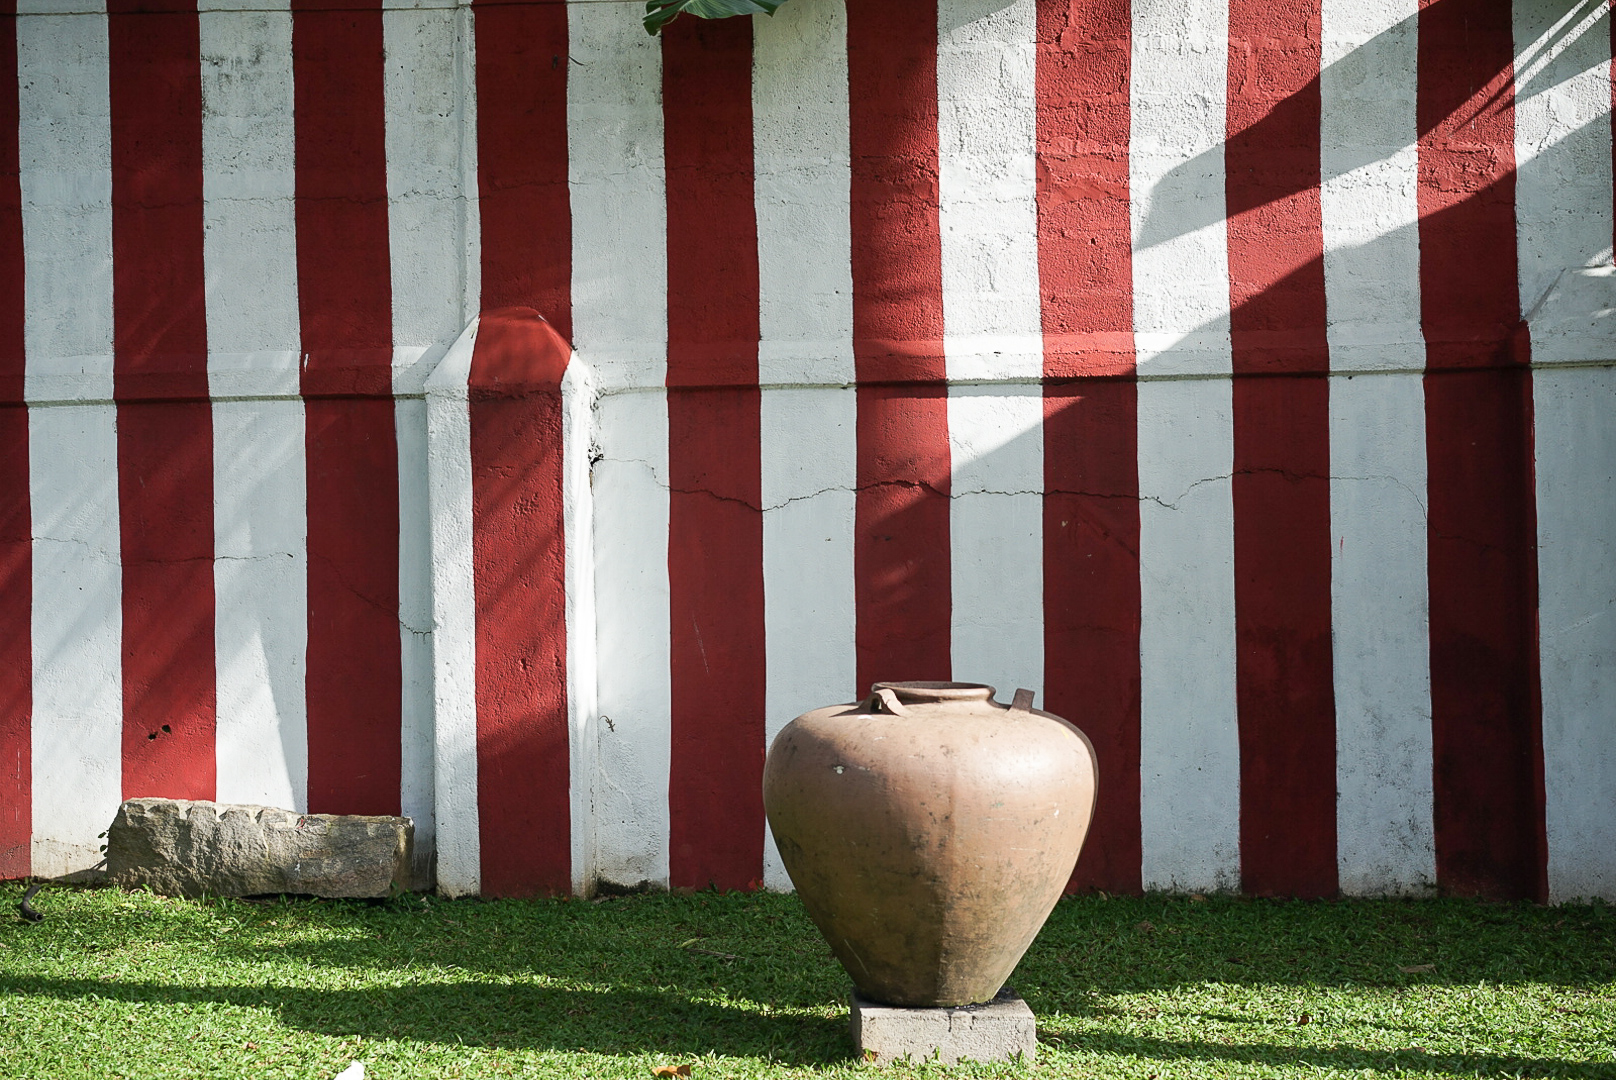 A funeral urn ornamentally placed in front of the red and white striped wall